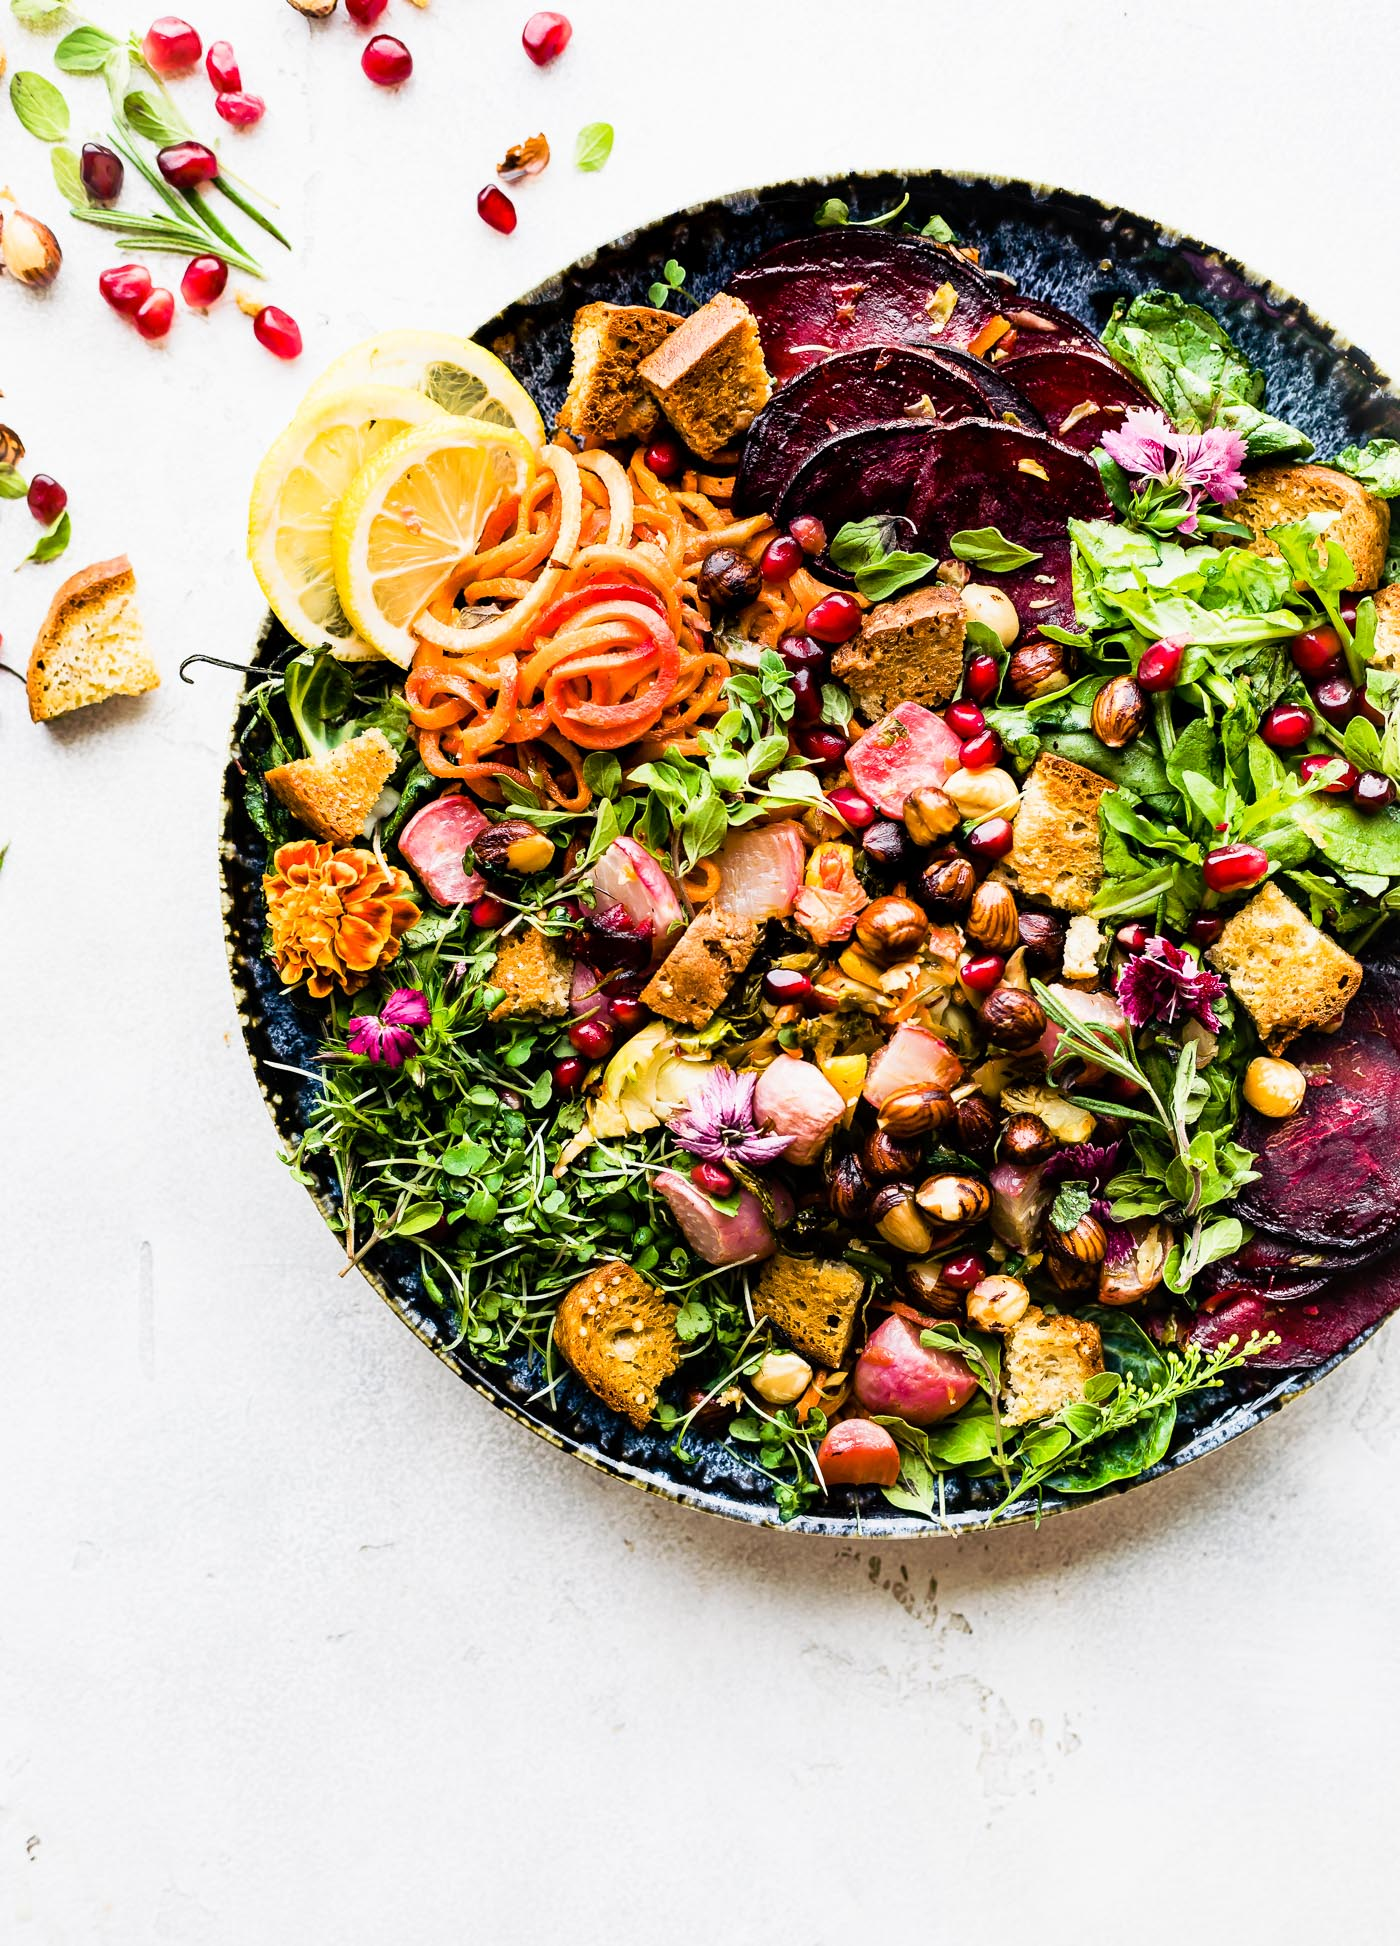 This Roasted Vegetable Panzanella Fall Salad is the perfect cozy dish to keep you nourish all season. Herb roasted Fall Vegetables, leafy greens, gluten free ancient grain bread, pomegranate, and toasted hazelnuts. It's a wholesome Fall salad you'll want to make again and again. Dairy free, simple to make.  www.cottercrunch.com